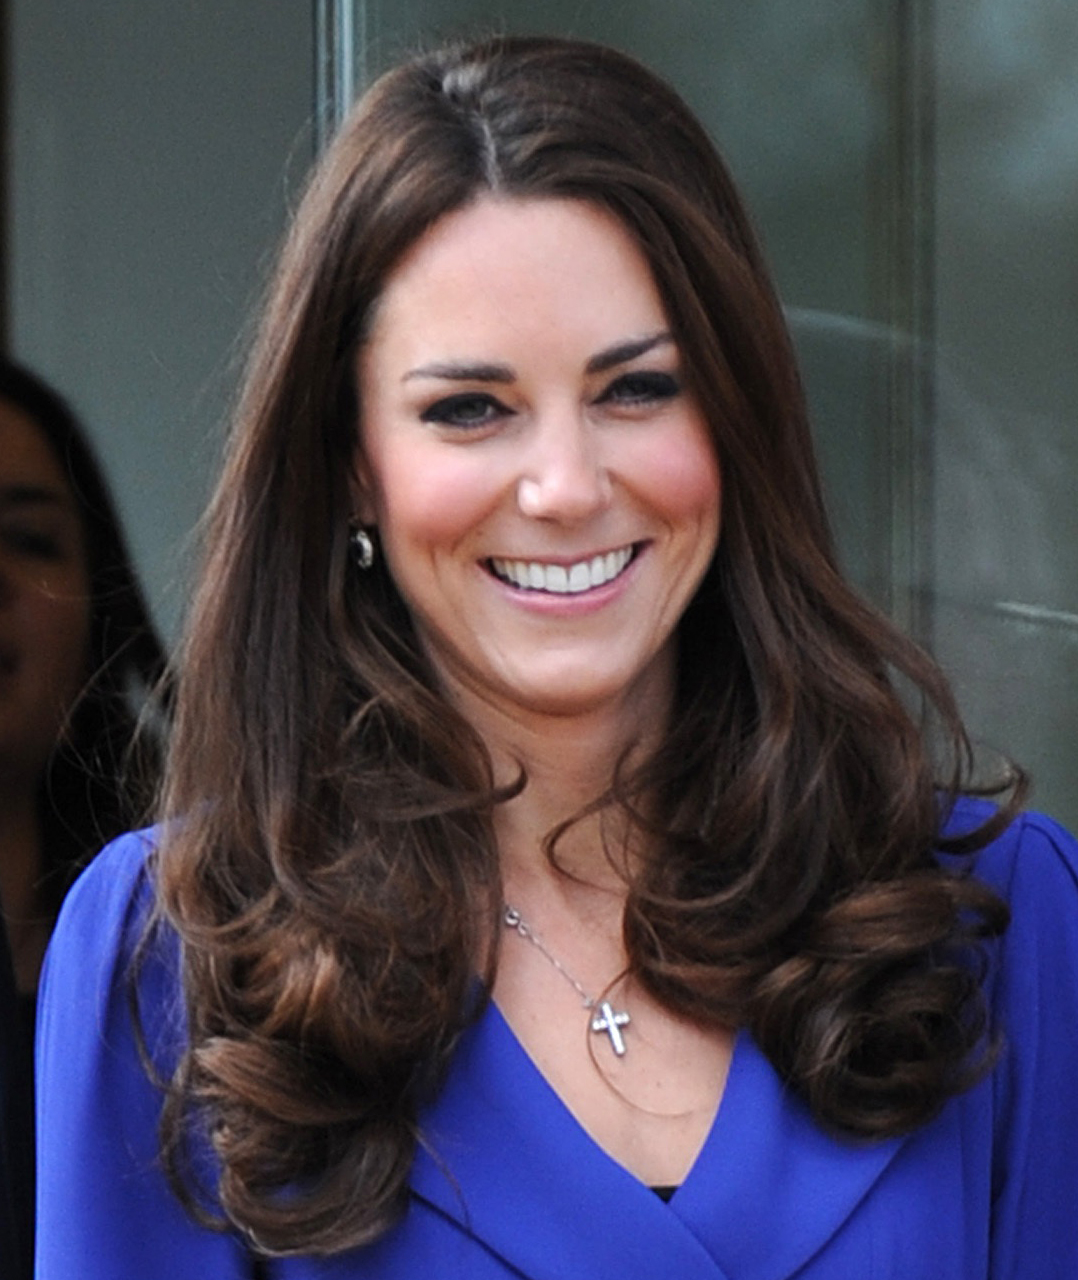 The Duchess of Cambridge - Ipswich